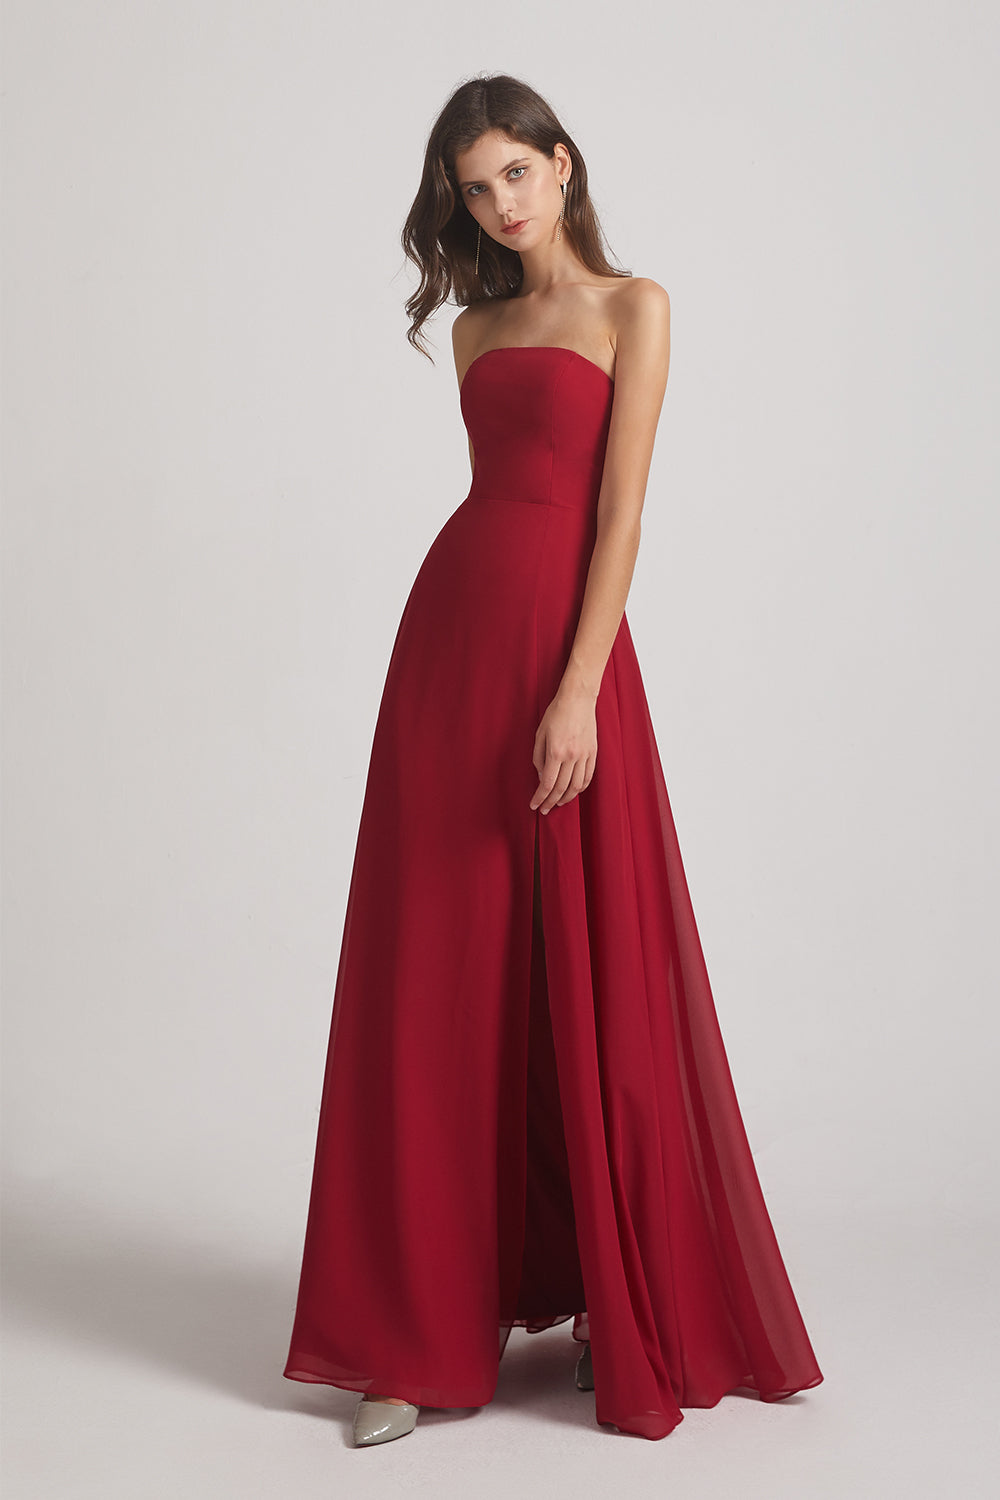 red chiffon slit long maids of honor dress